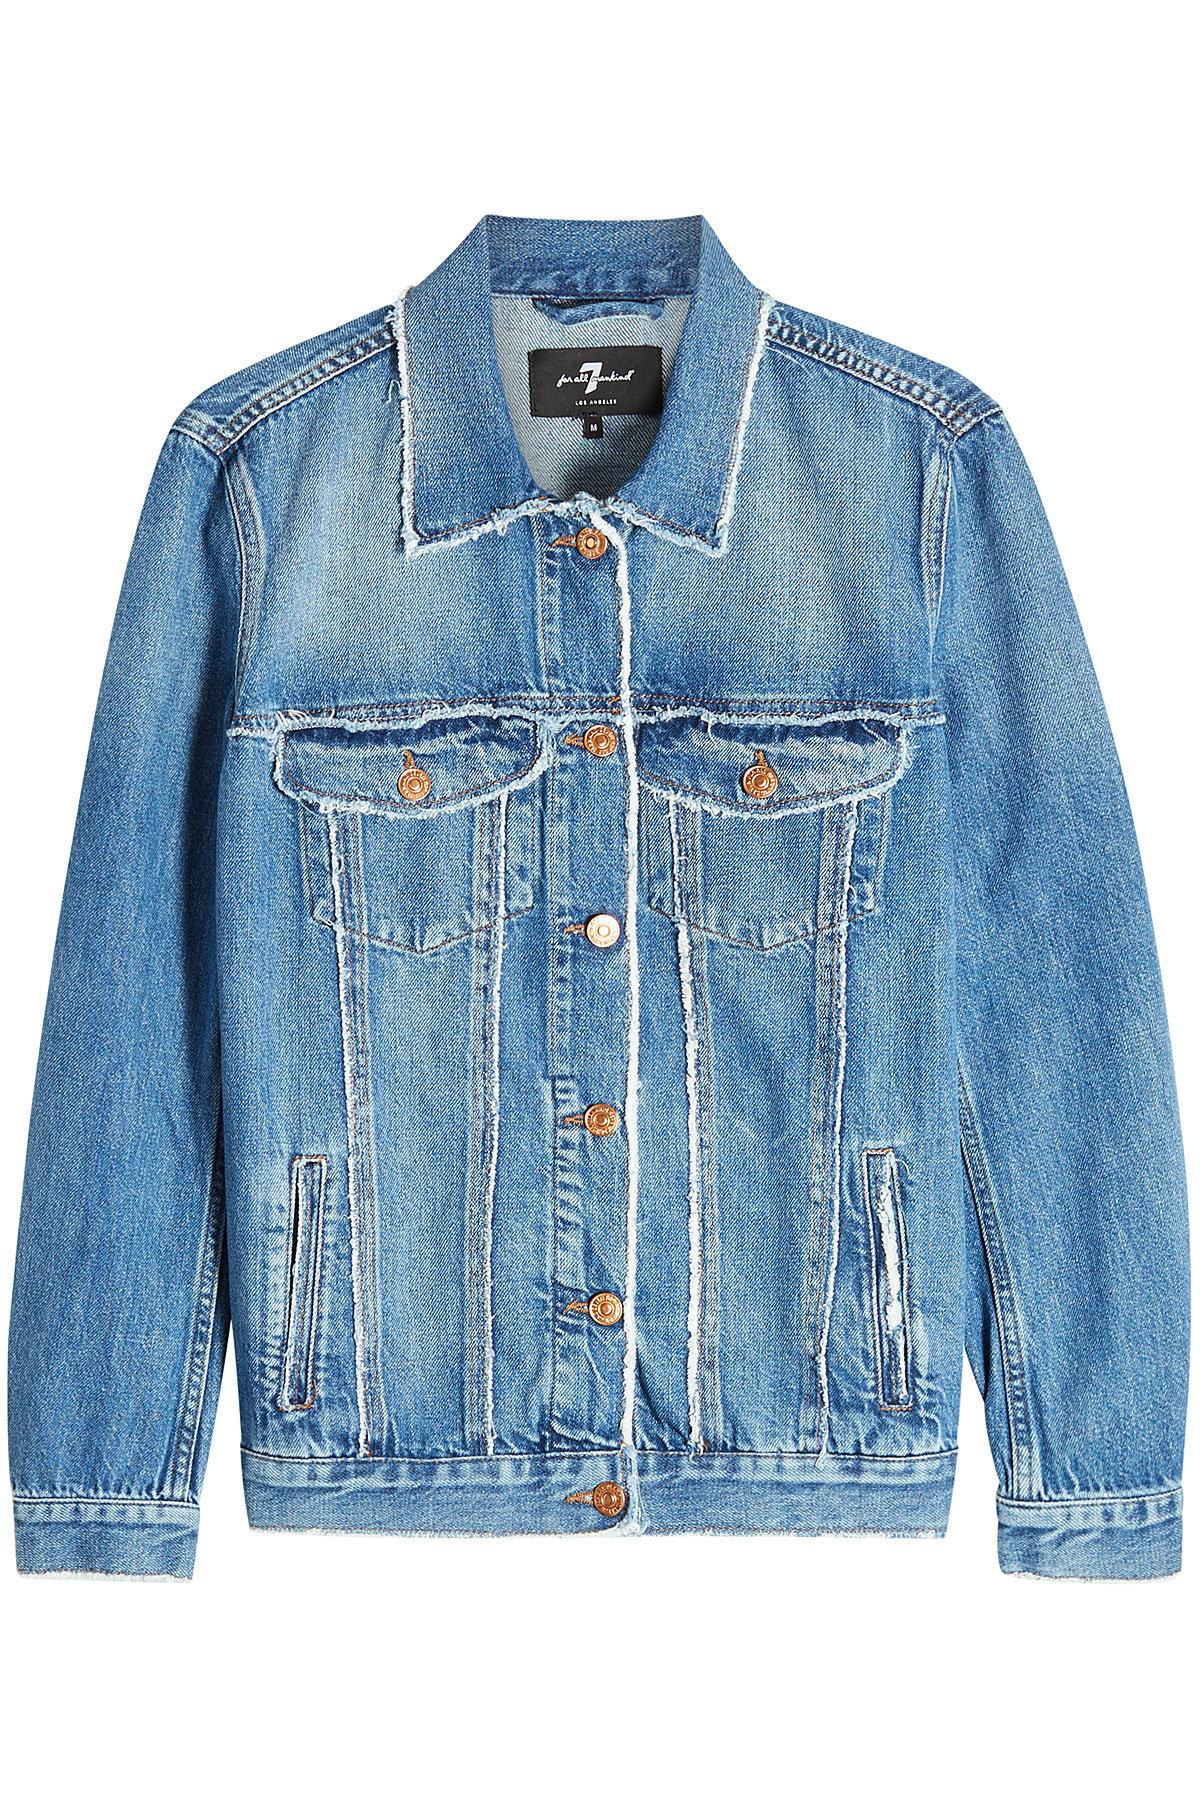 7 For All Mankind Oversize Modern Trucker Denim Jacket In Blue